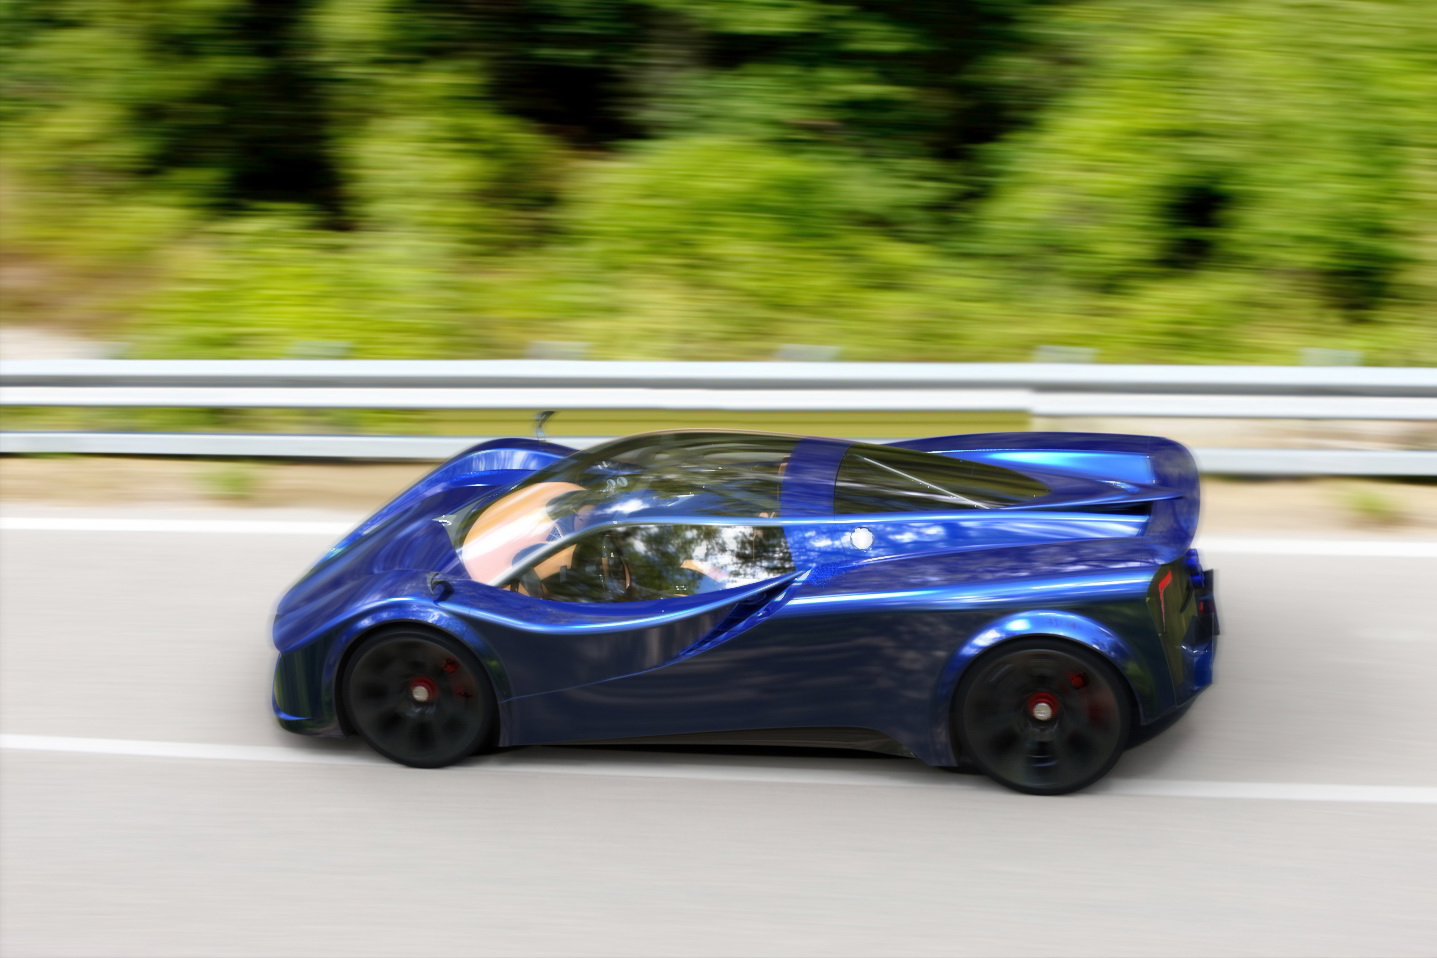 Pagani-car-wallpaper-wp421641-1